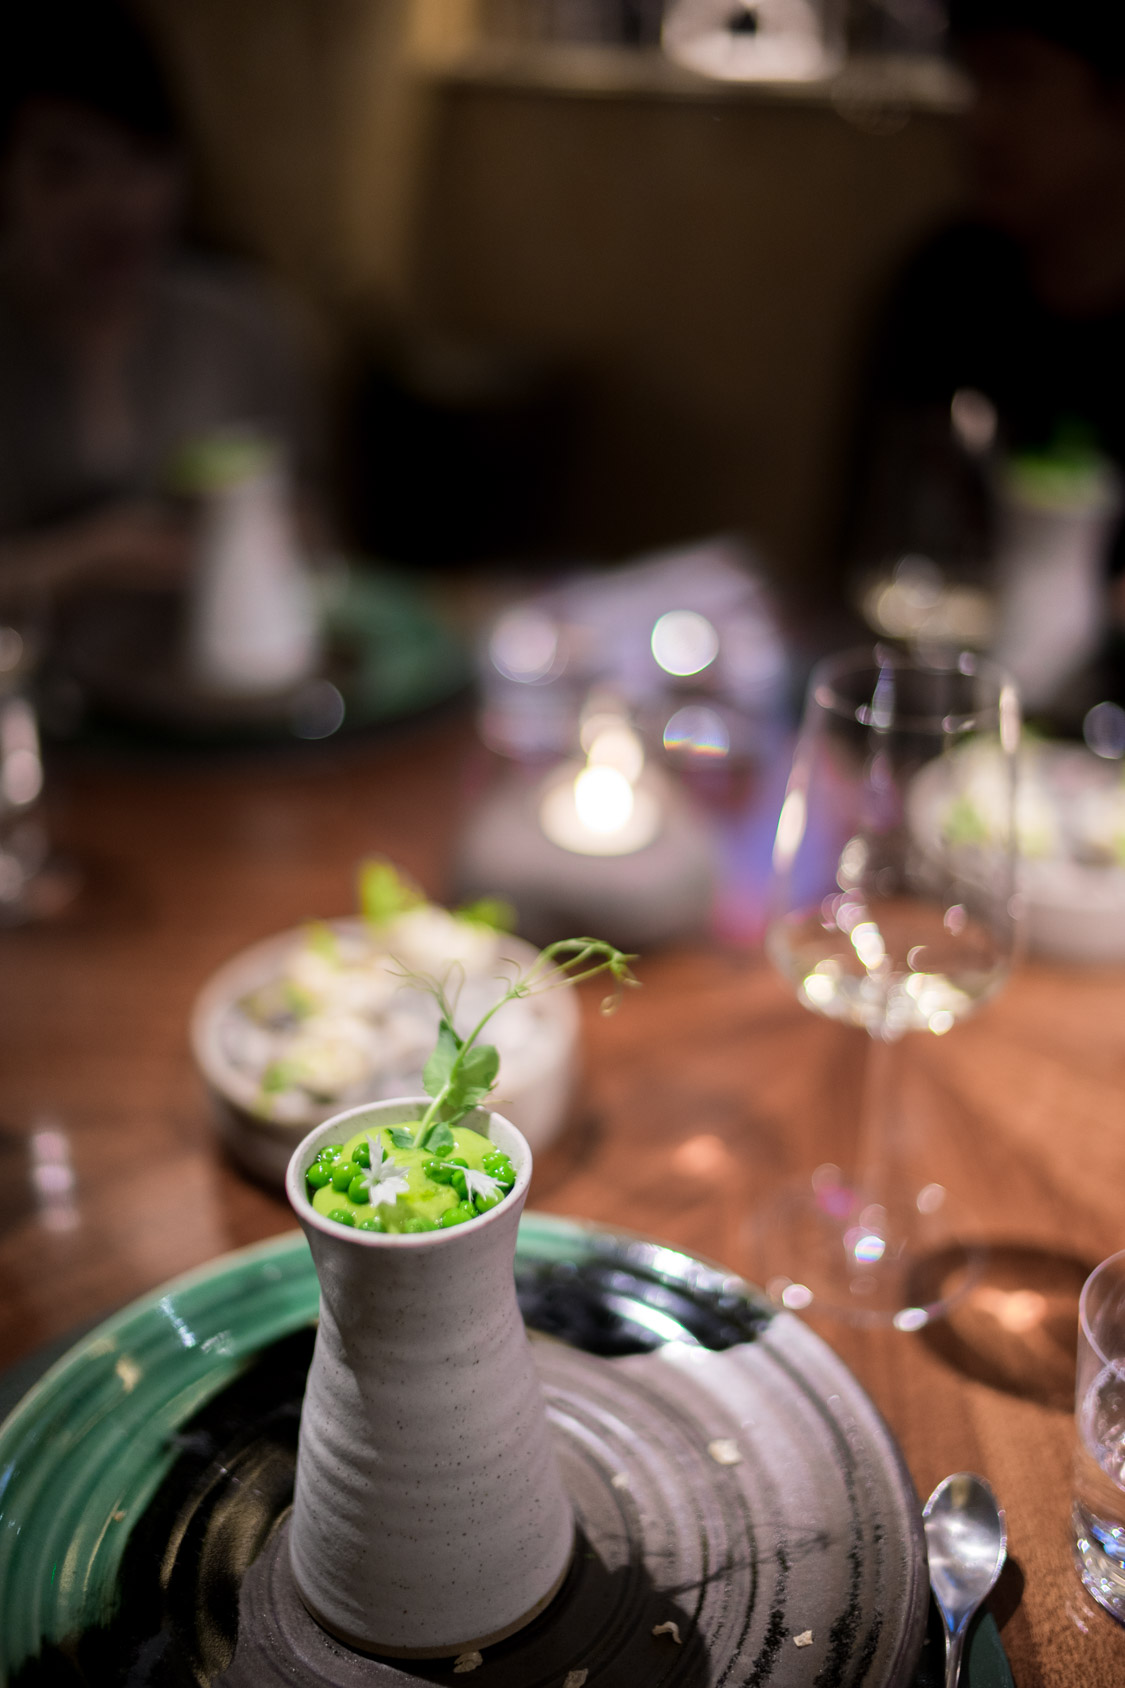 Pea mousse with cod and calamint